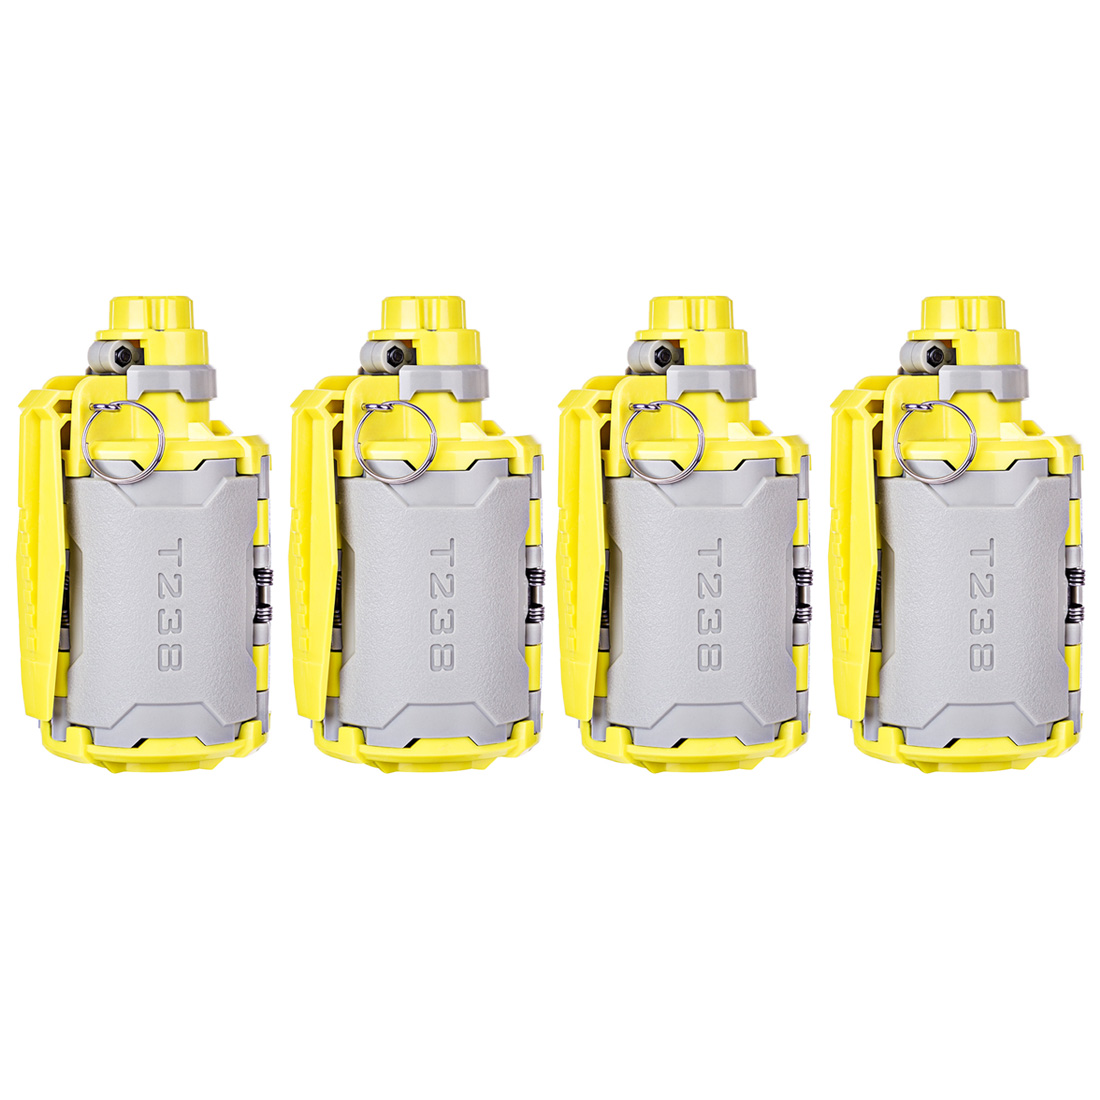 4 Pcs T238 V2 Large Ungrad Capacity Bomb Tactical Toy With Time-delayed Function For Nerf Gel BBs Airsoft Wargame